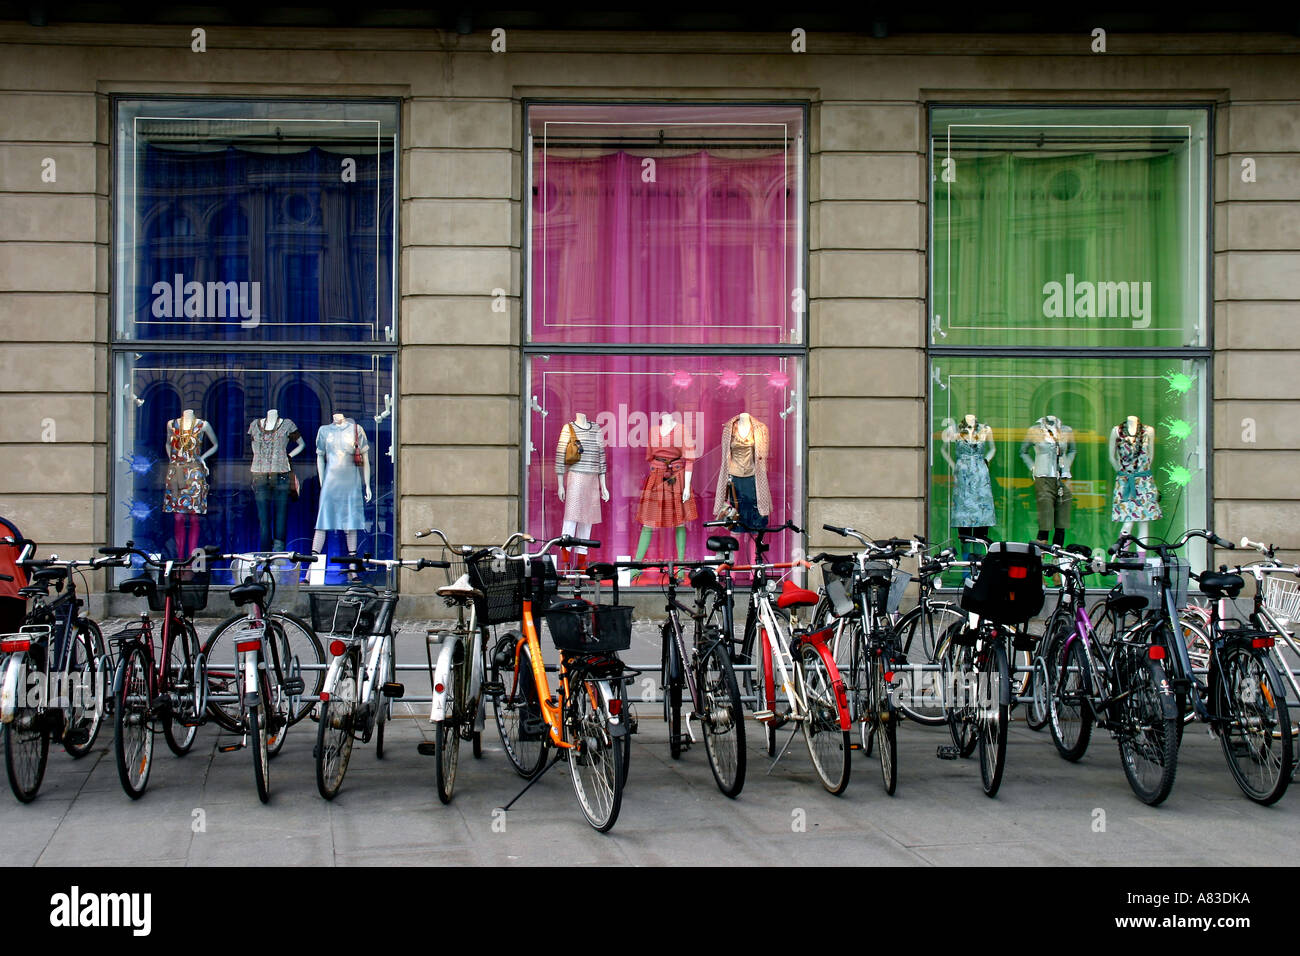 Bicycles parked in Kongens Nytorv The Kings New Square in the centre of Copenhagen Denmark - Stock Image